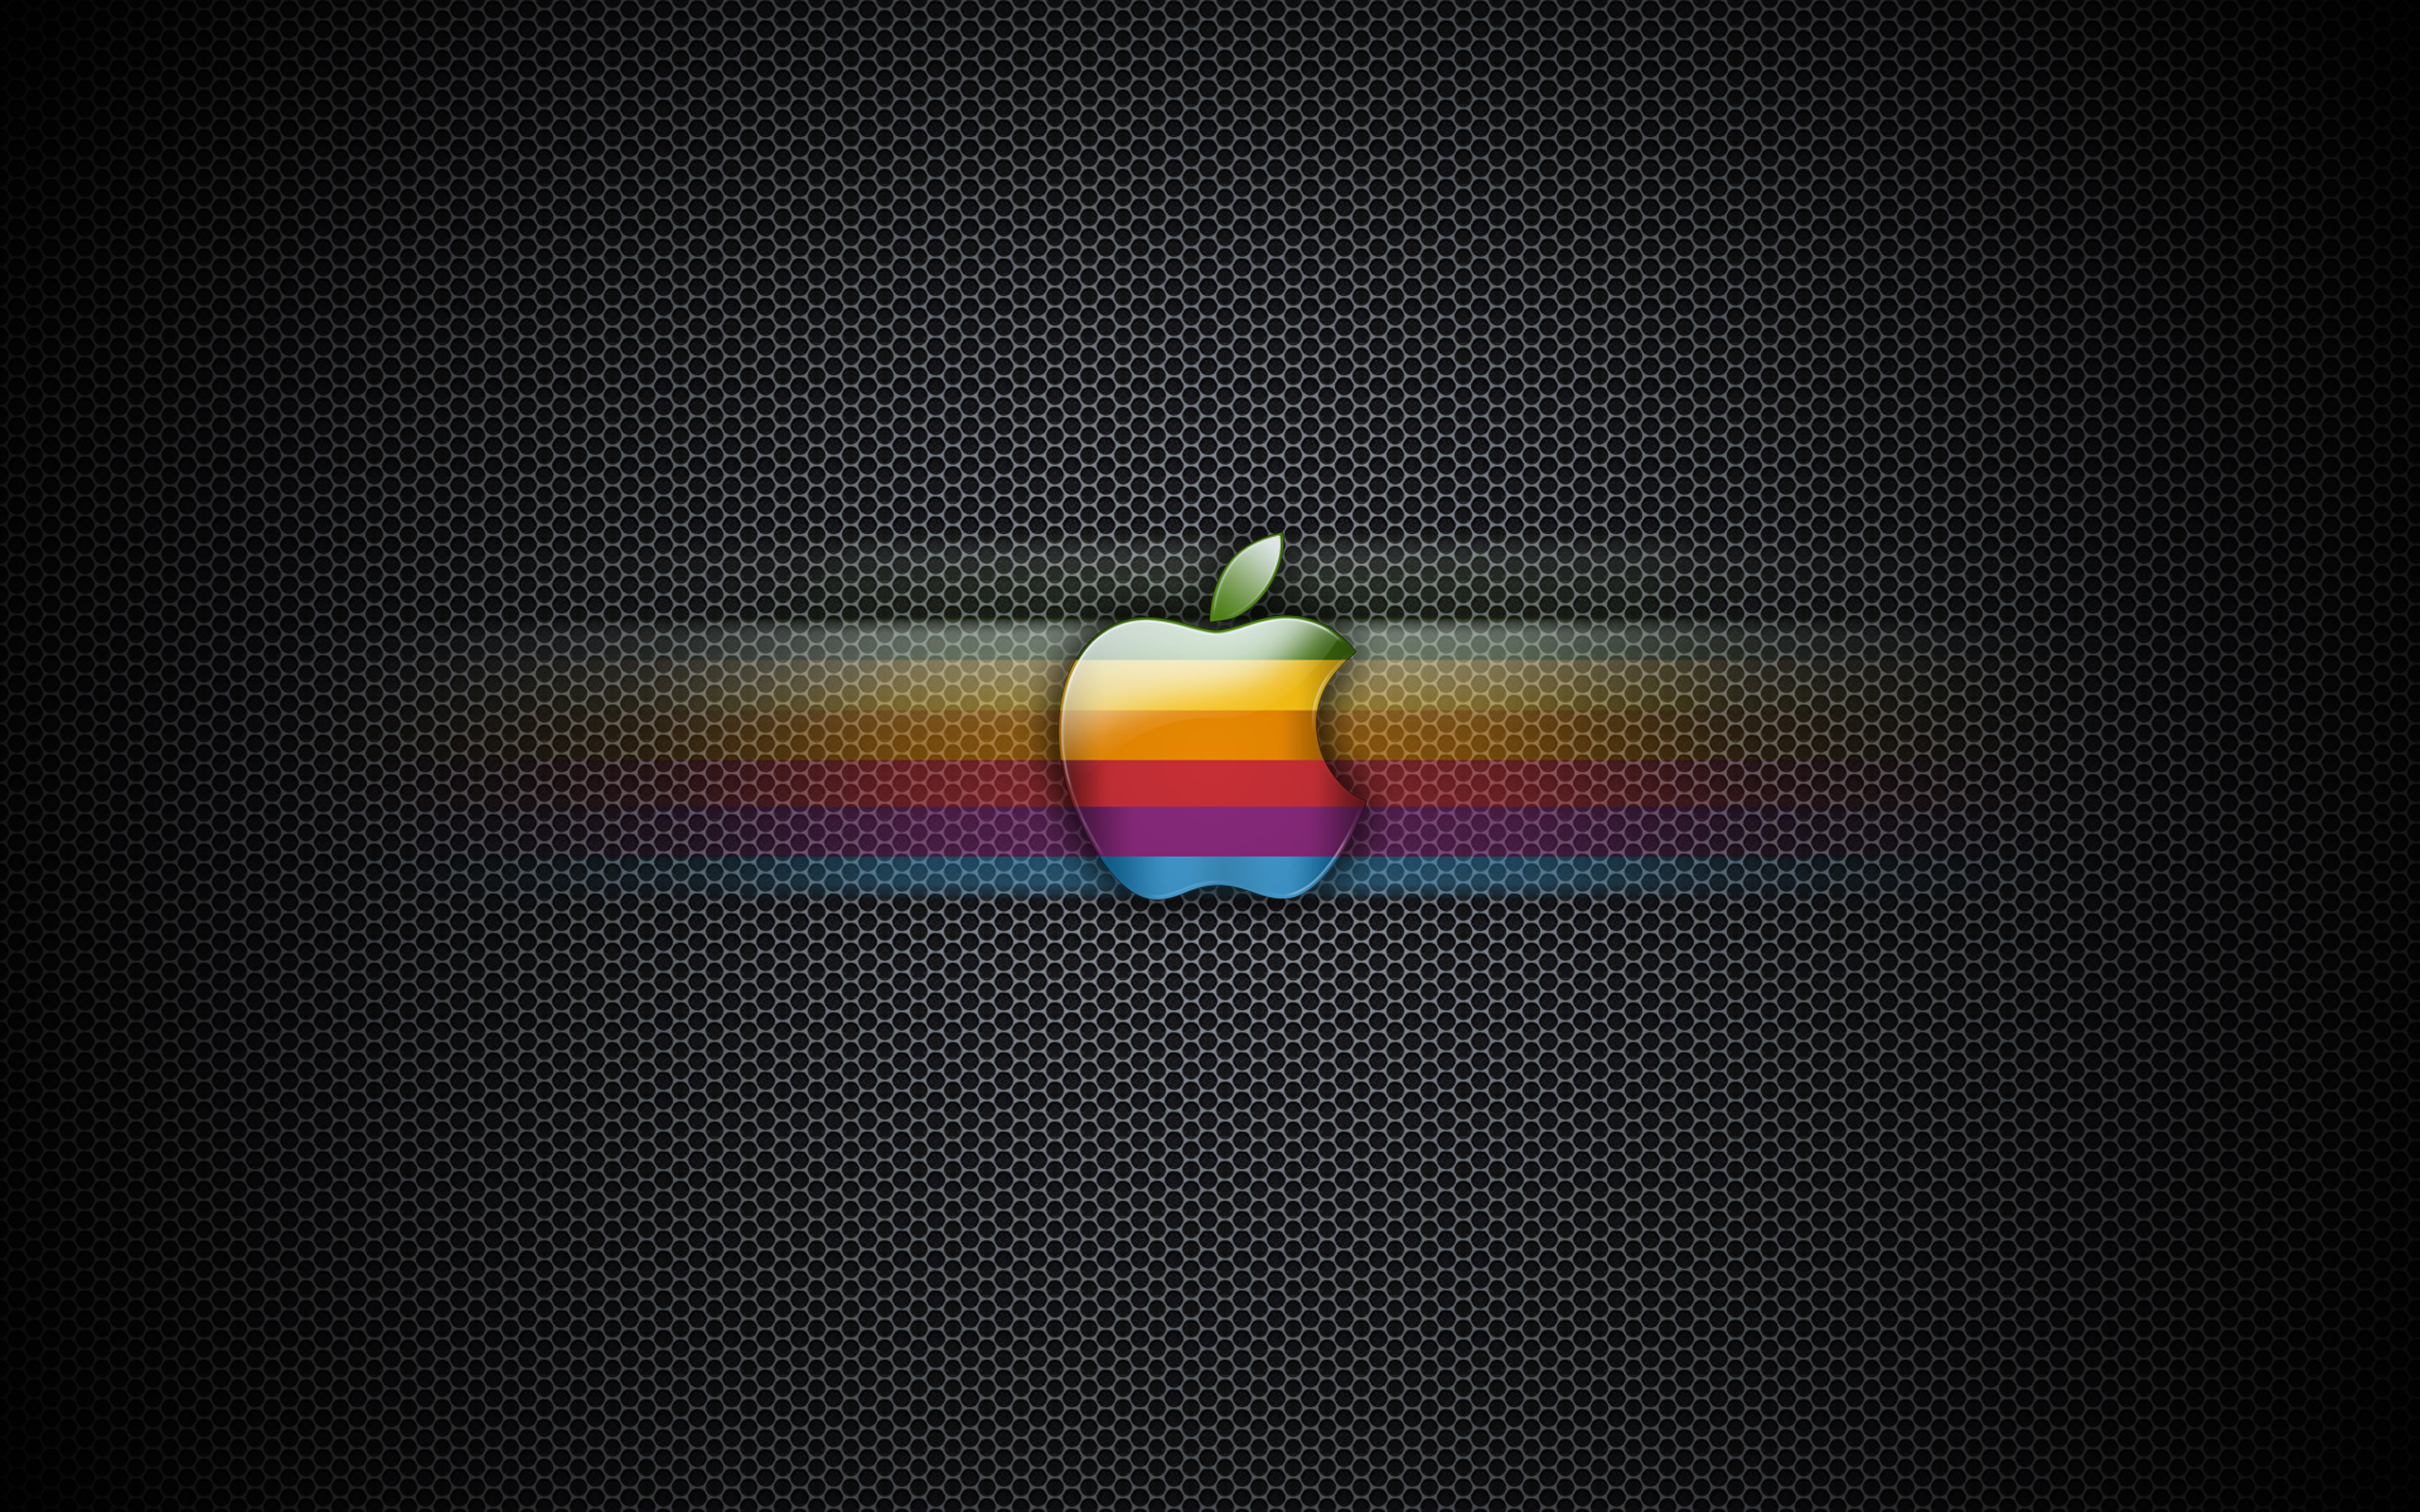 apple logo wallpaper 23076